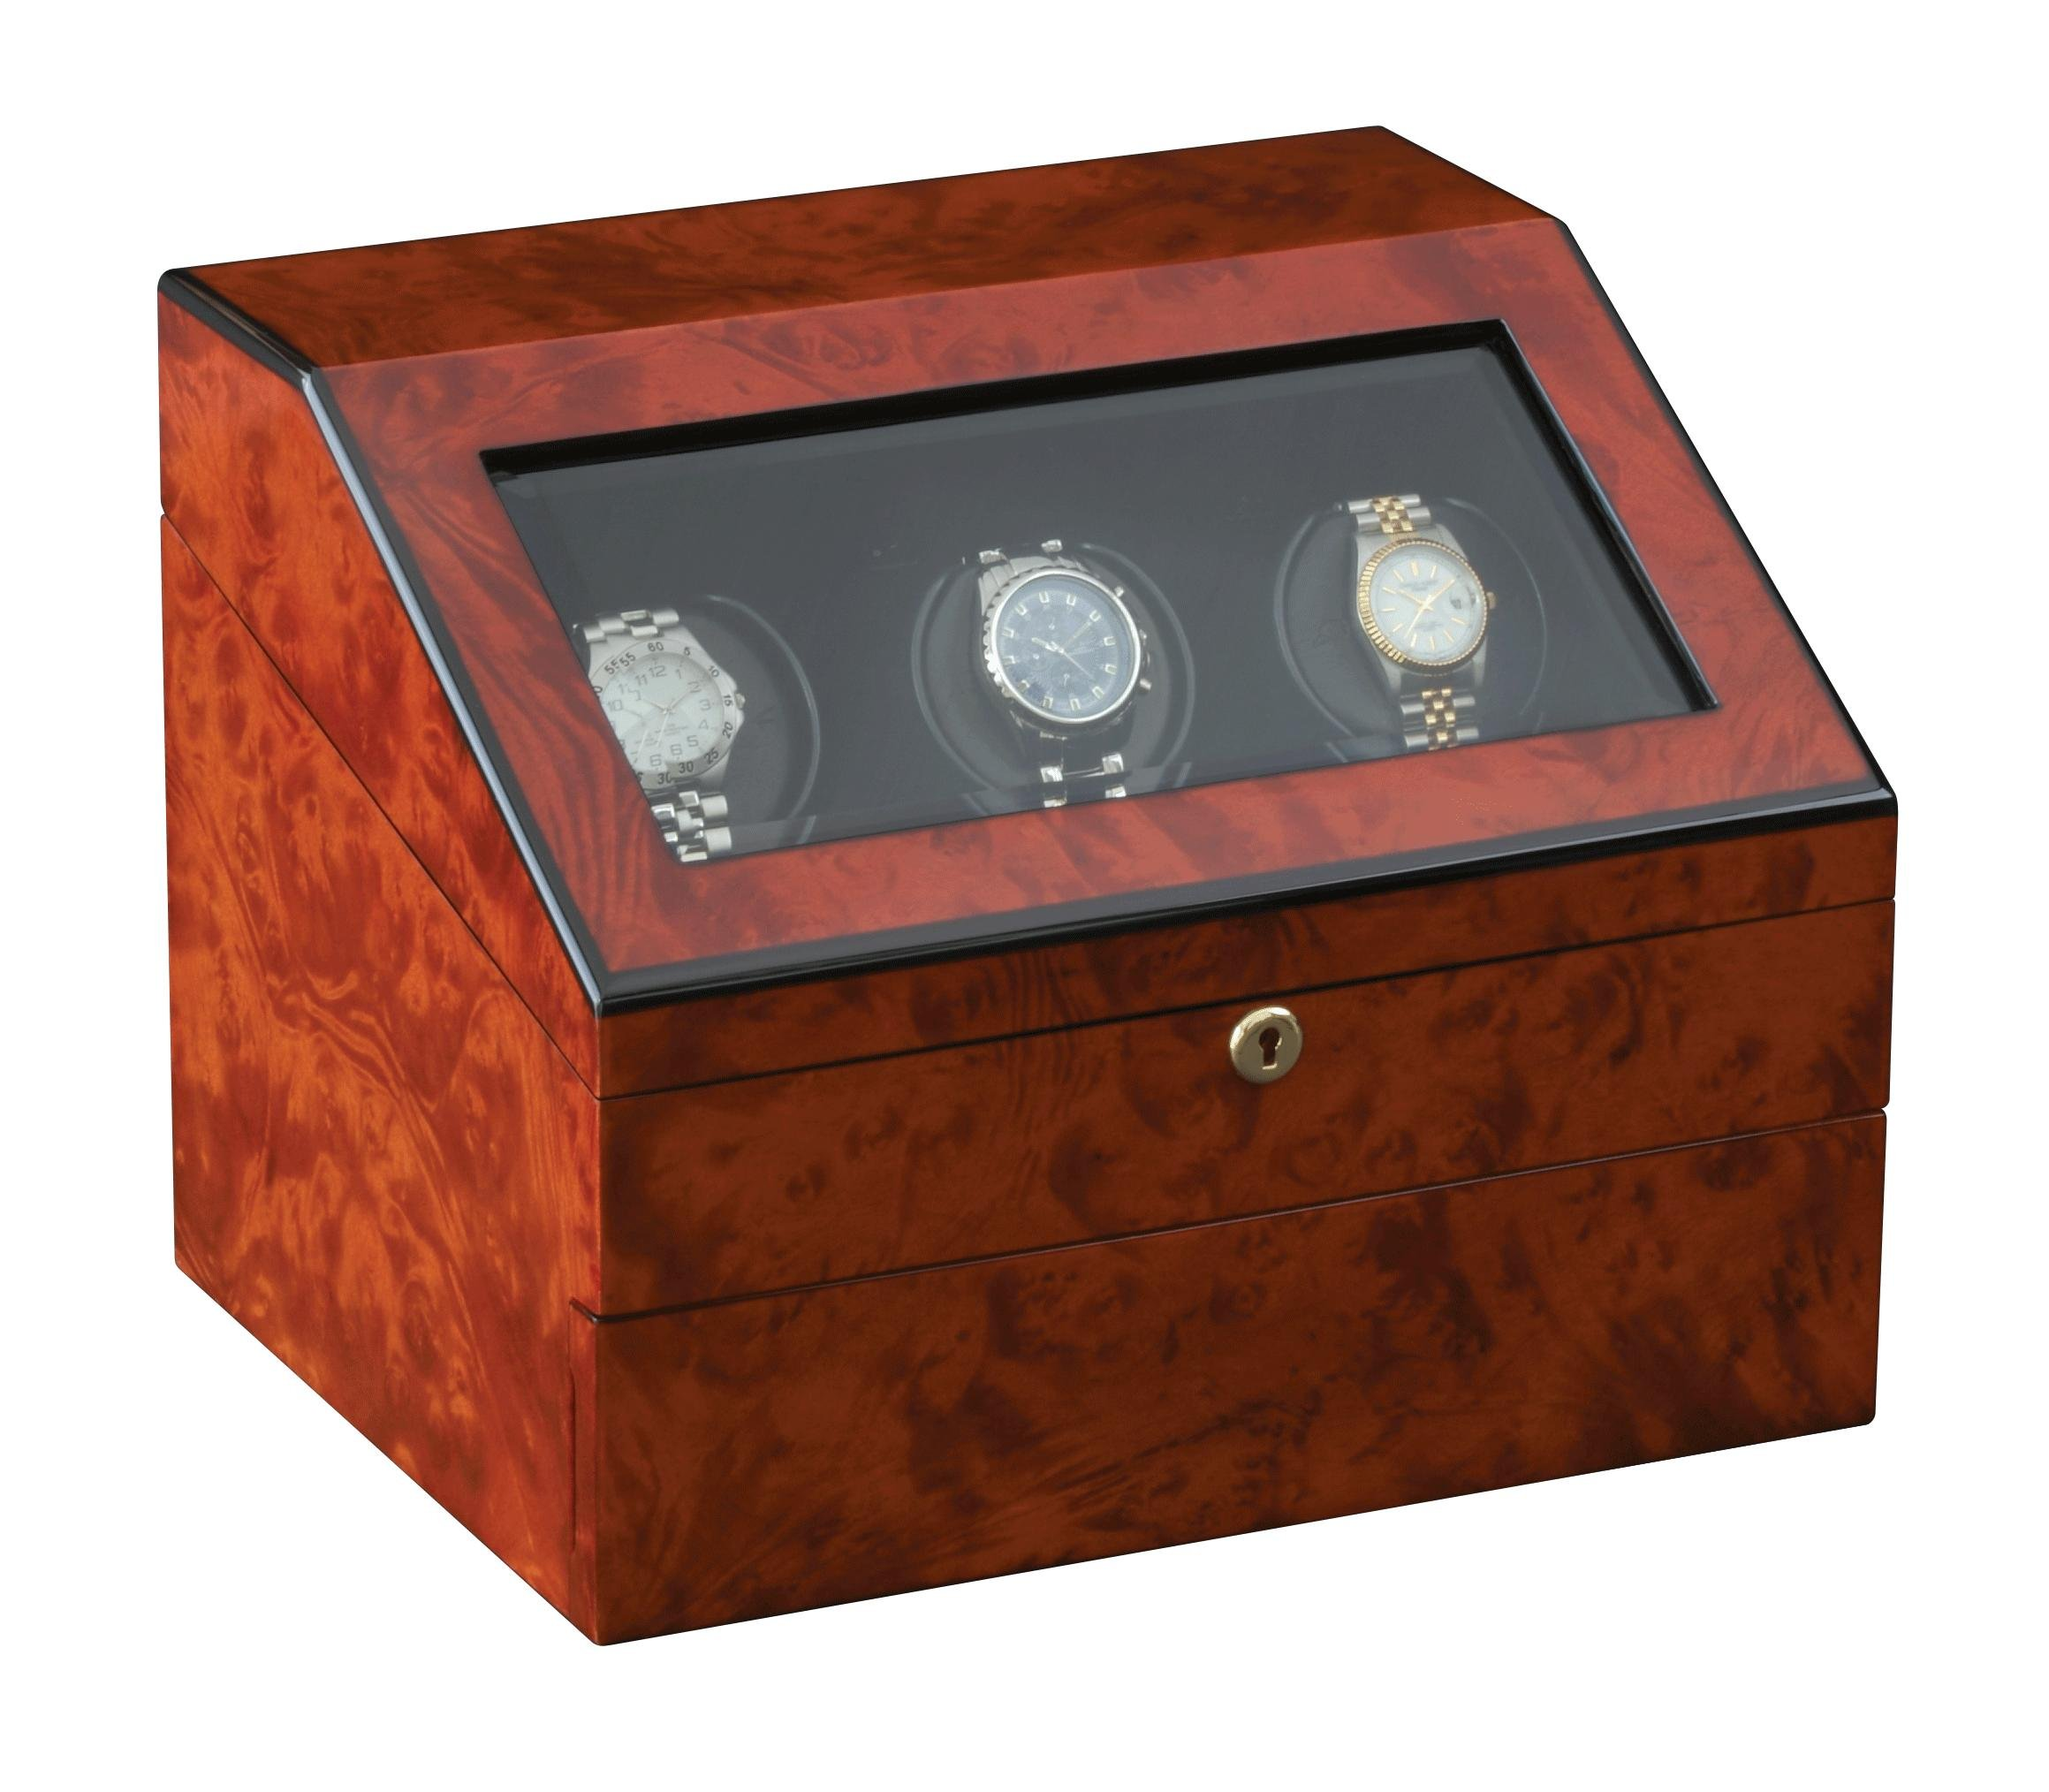 Orbita Siena 3 Executive Programmable Watch Winder, Teak by Orbita